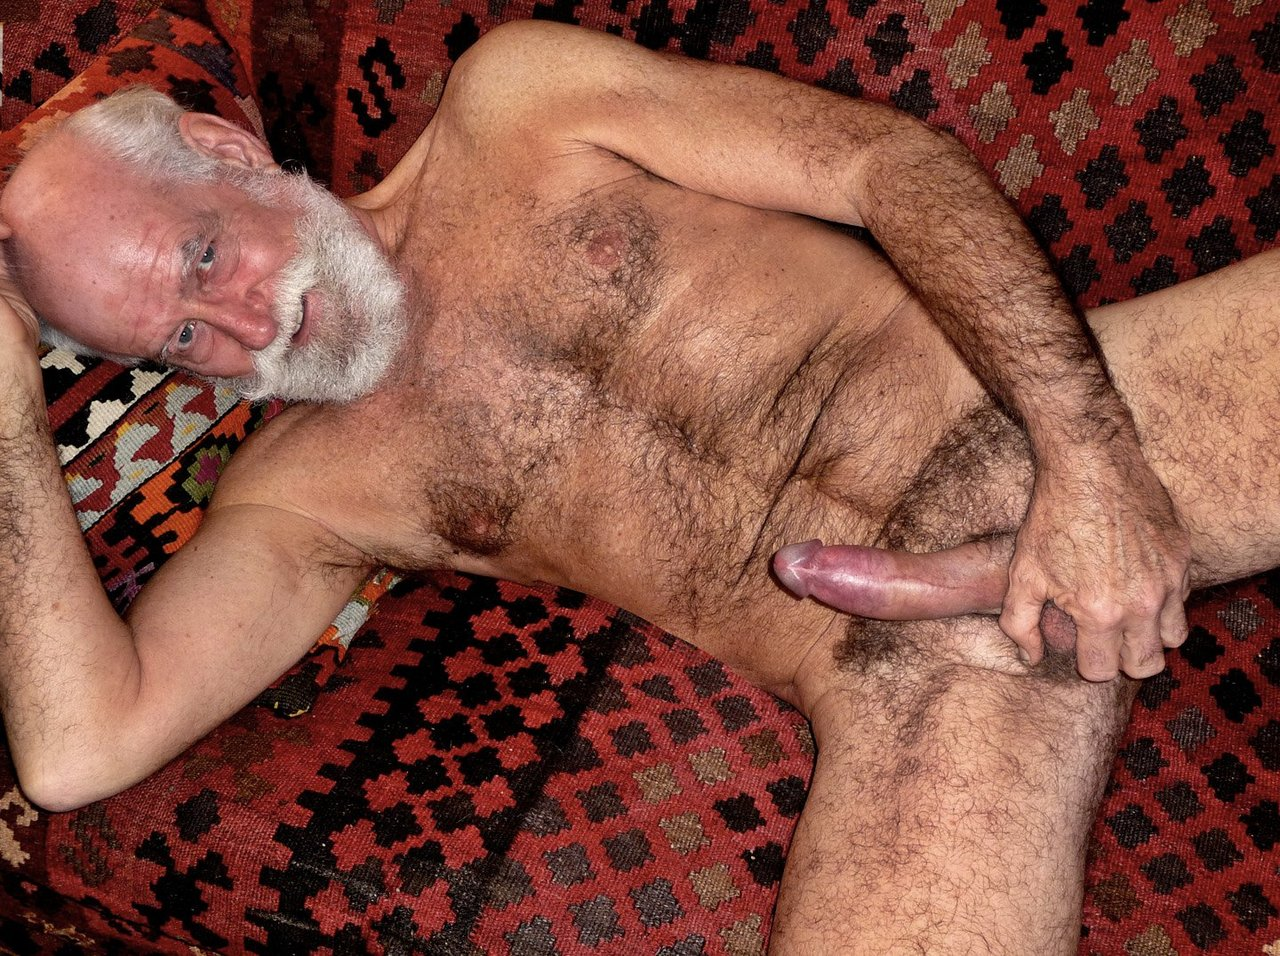 hot older gay men